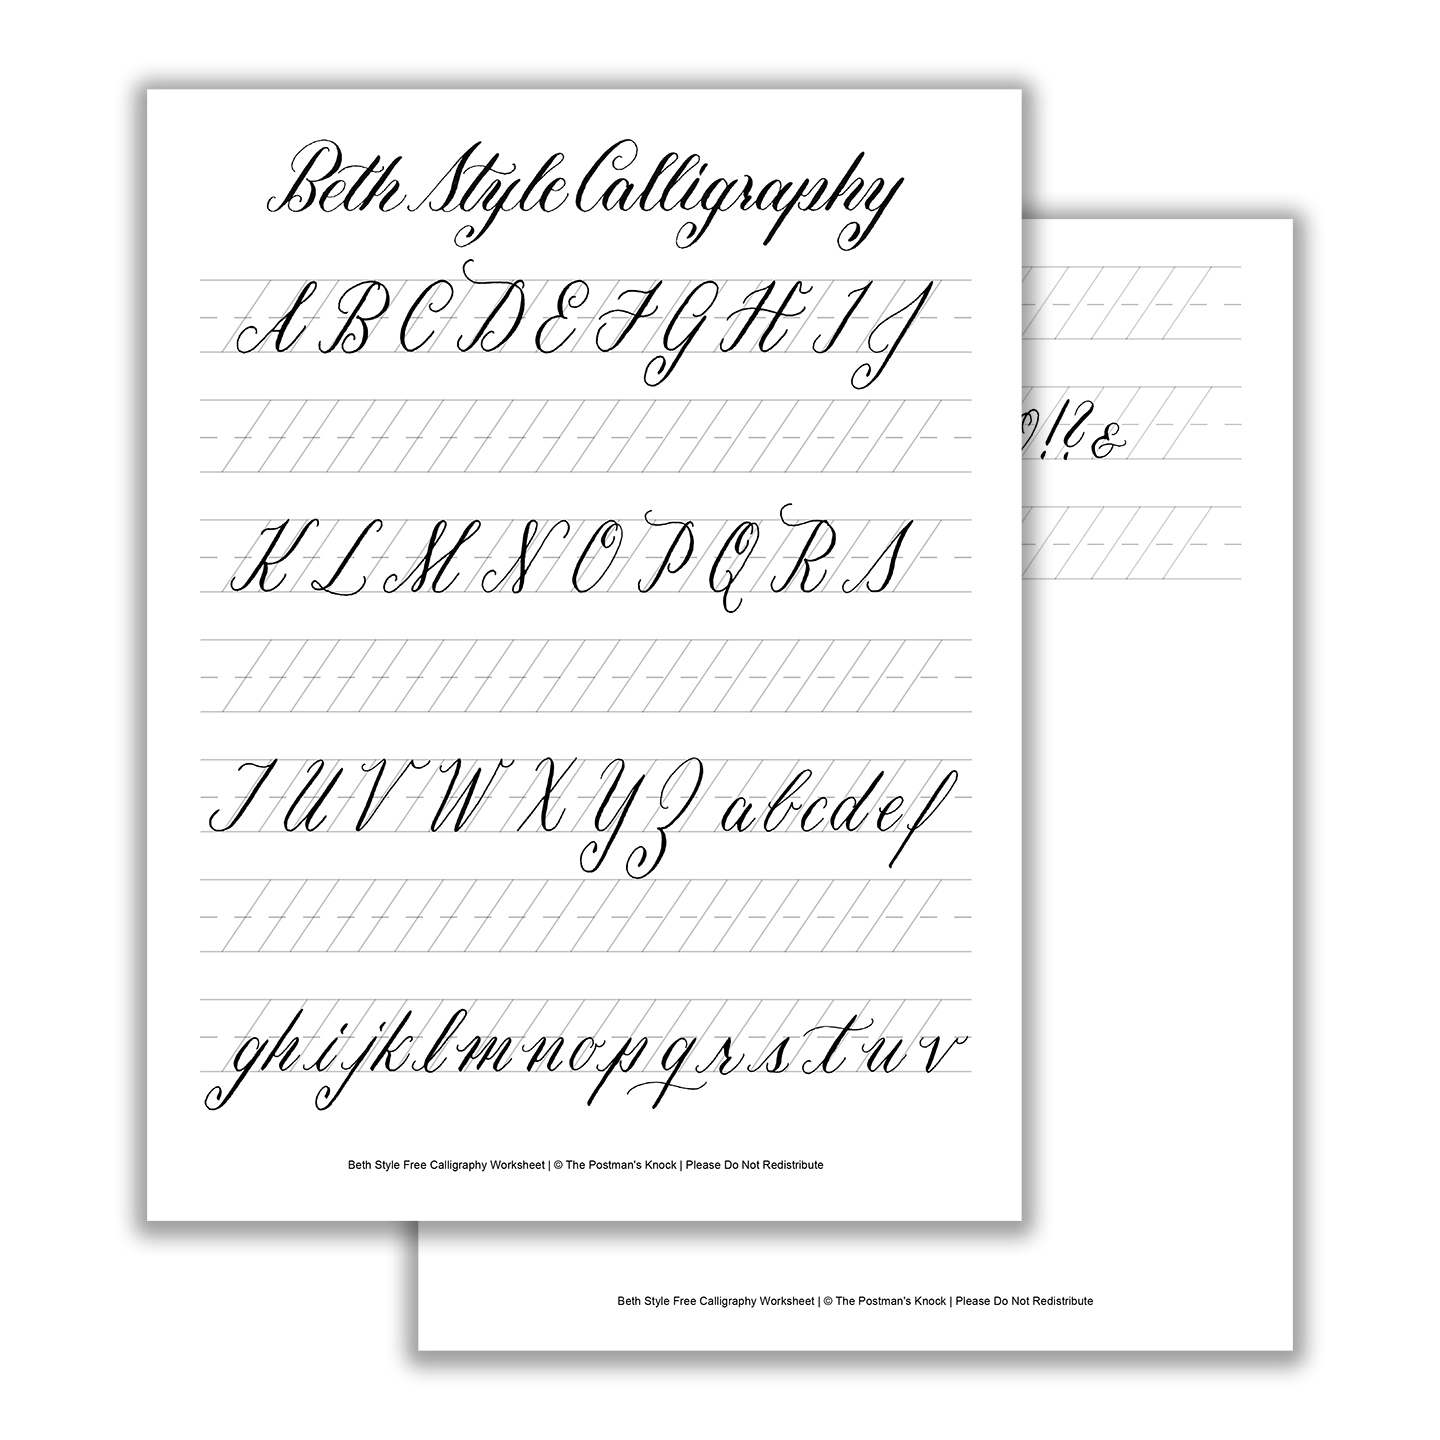 photograph regarding Calligraphy Worksheets Printable titled Printable Calligraphy Exemplar - Beth Layout